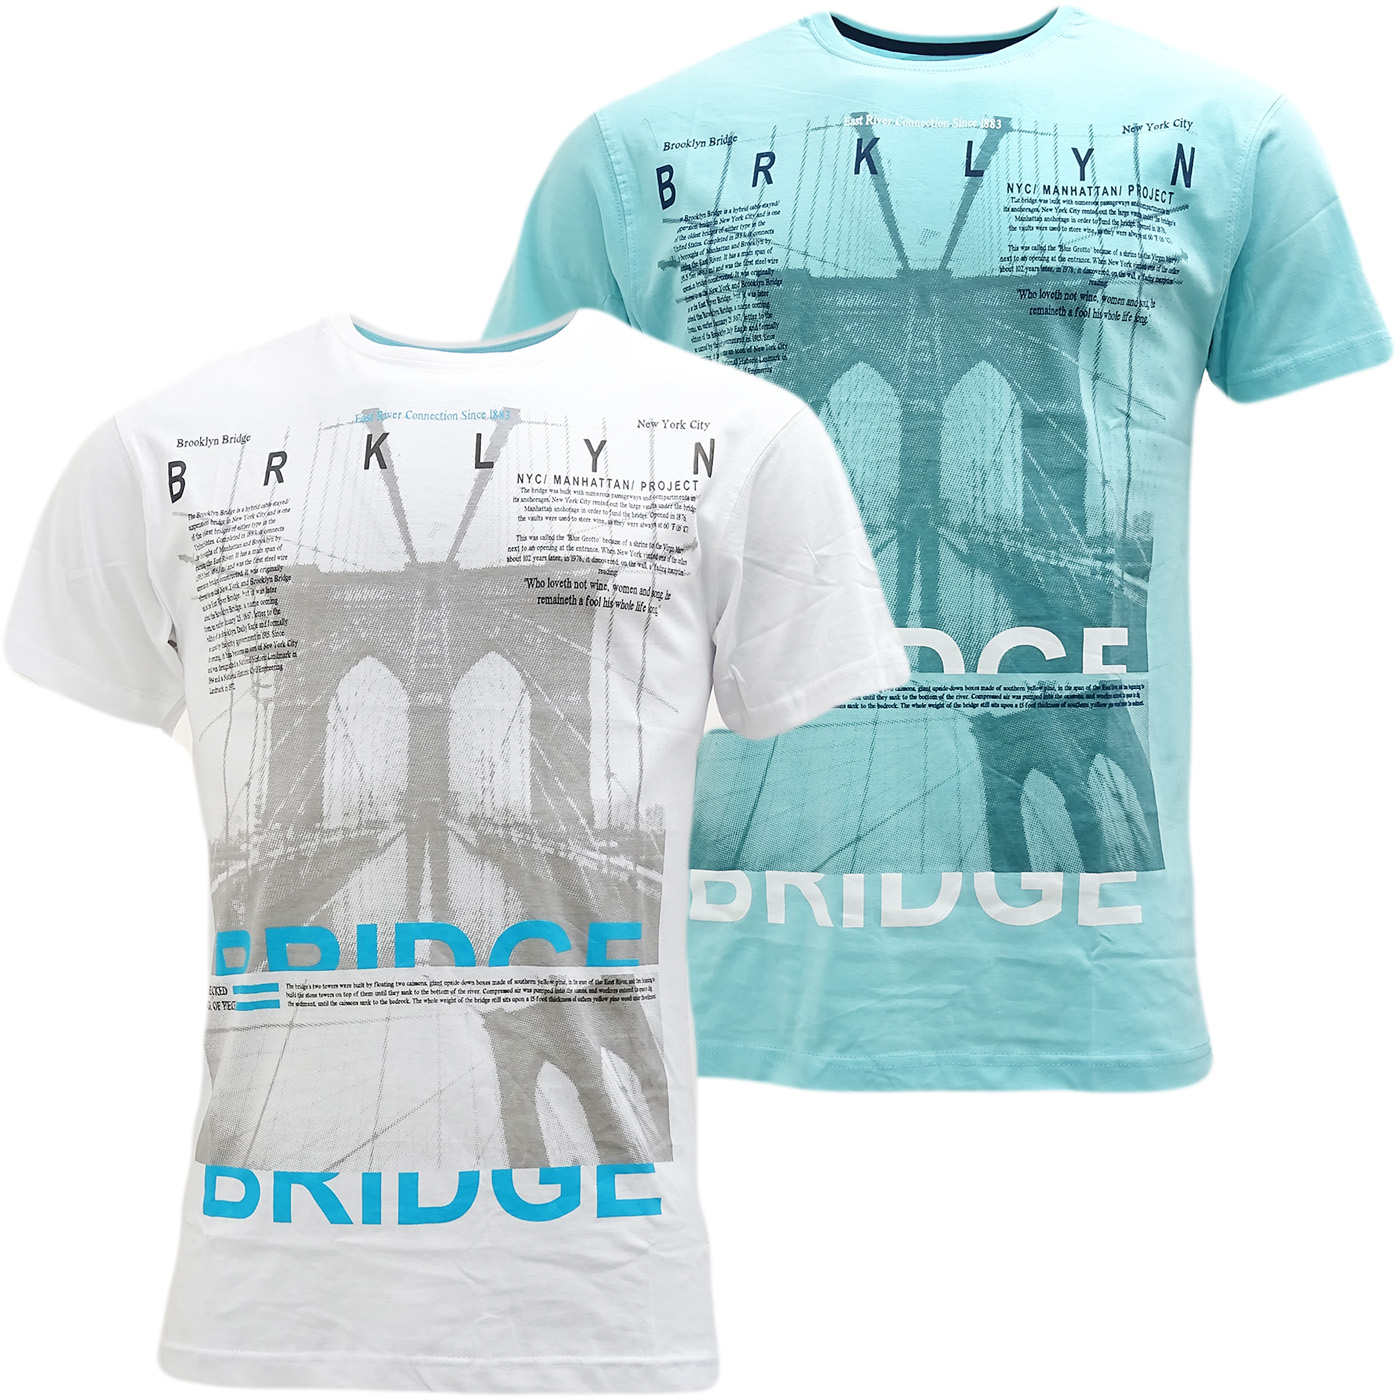 Cargo Brooklyn Bridge T-Shirt - Brooklyn